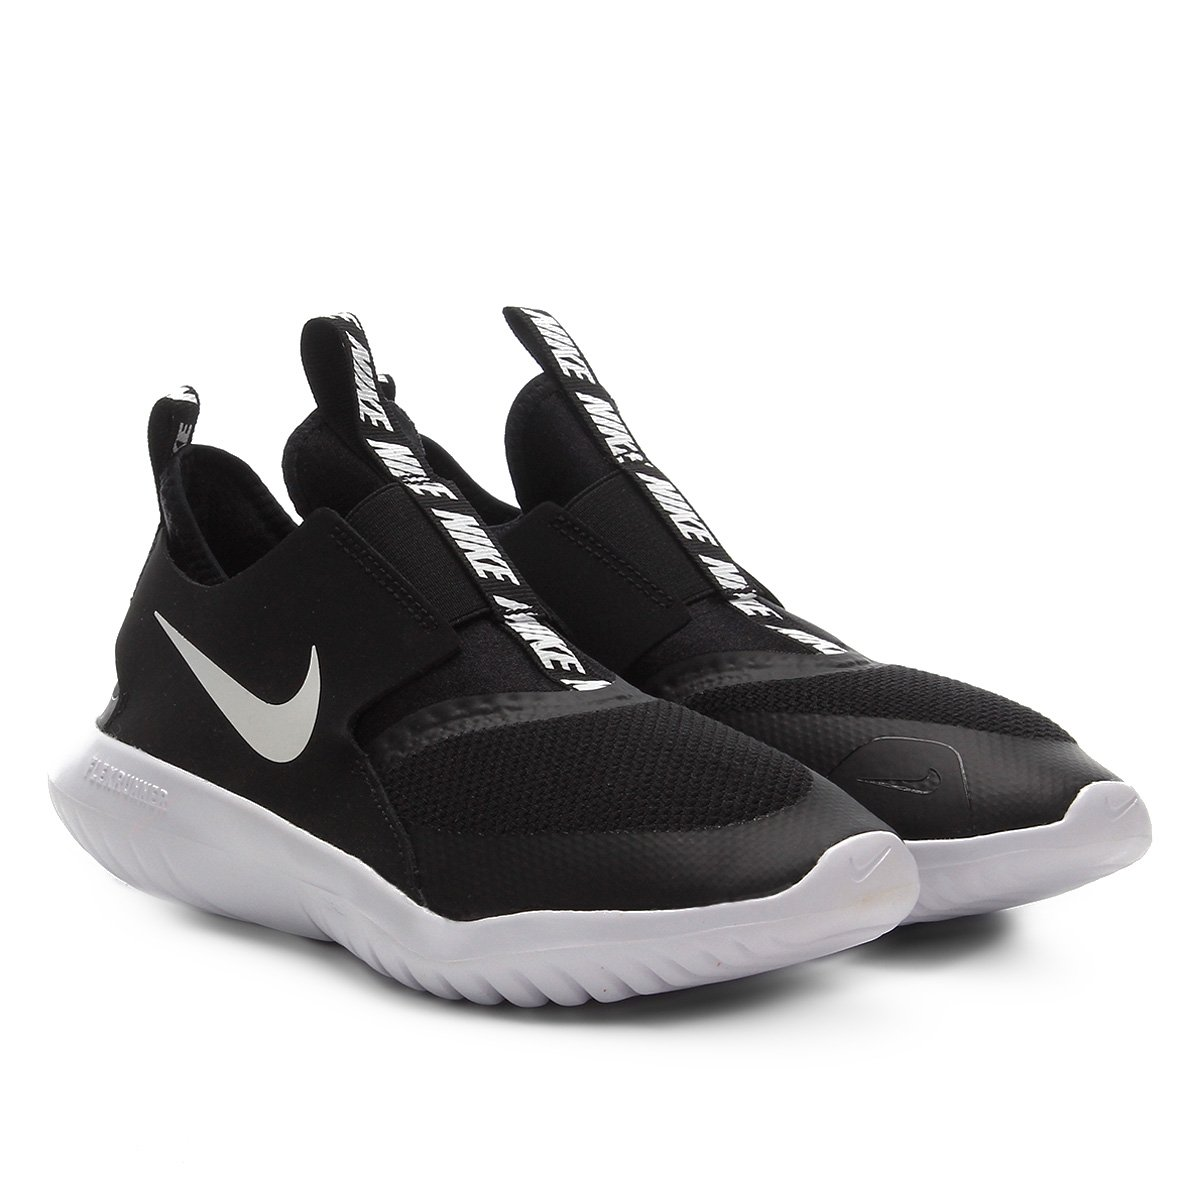 Tênis Infantil Nike Flex Runner PS